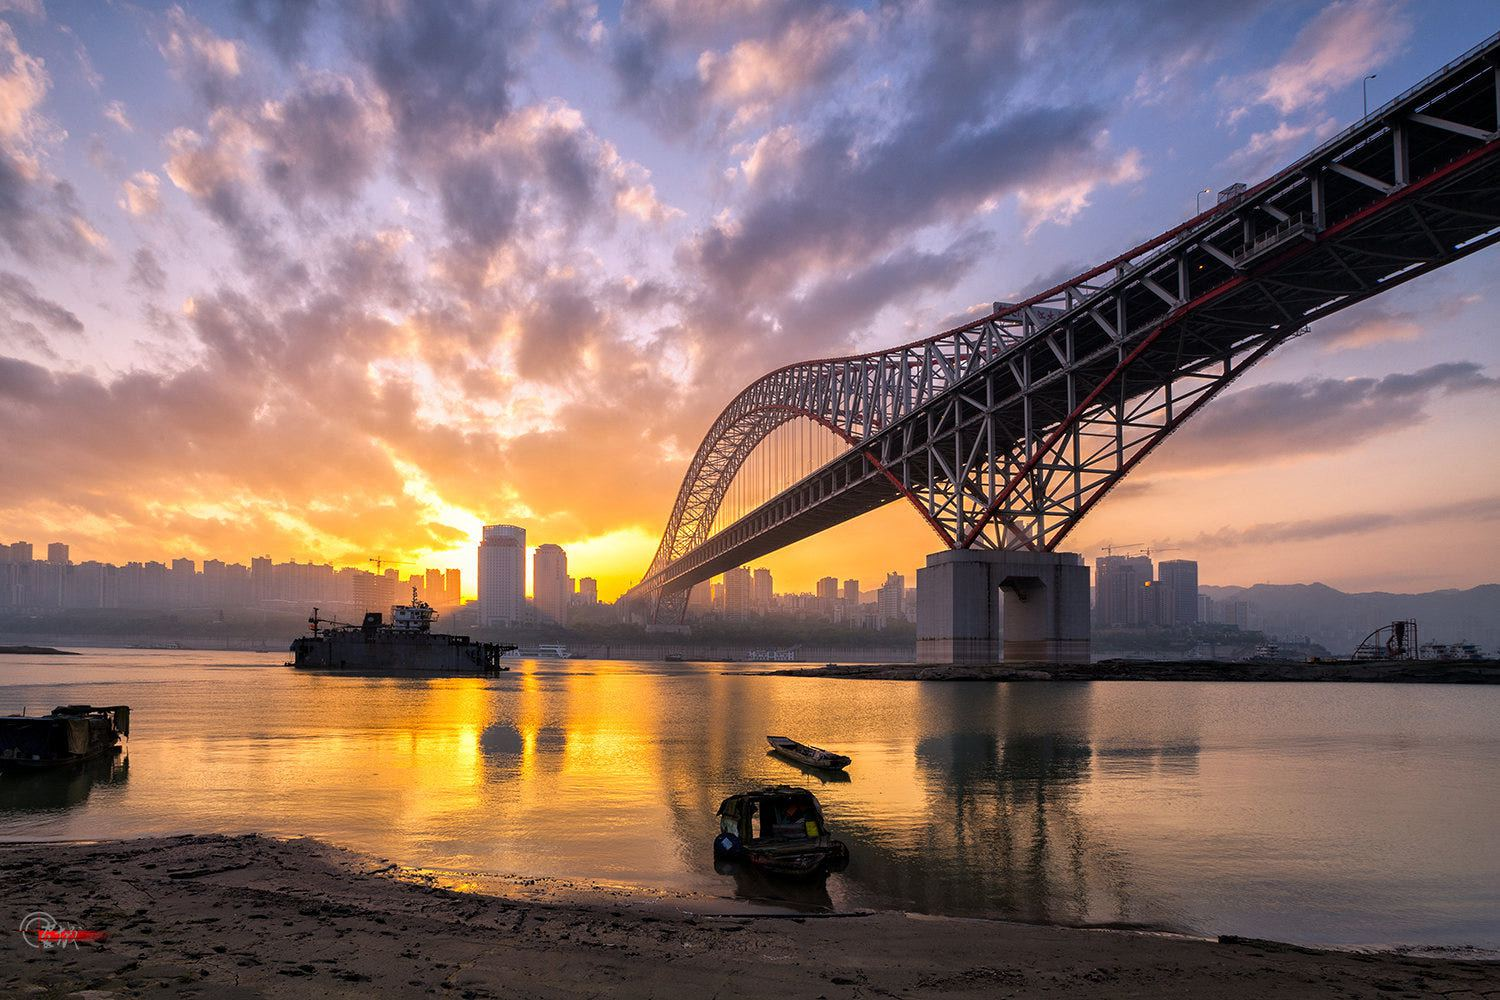 Excellent Cityscape Wallpaper 4k by Chinese Photographer